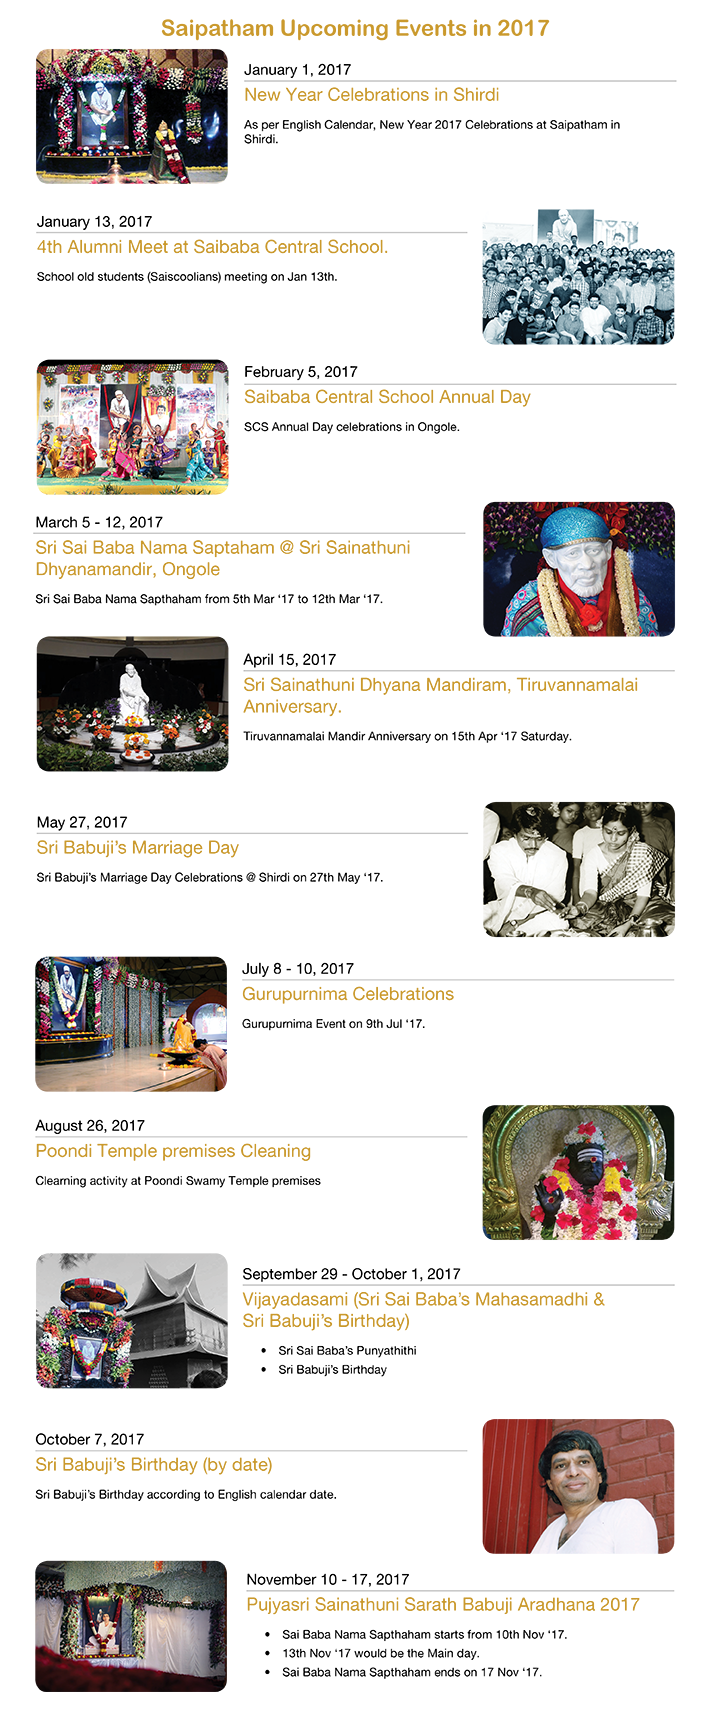 Schedule of events at Saipatham